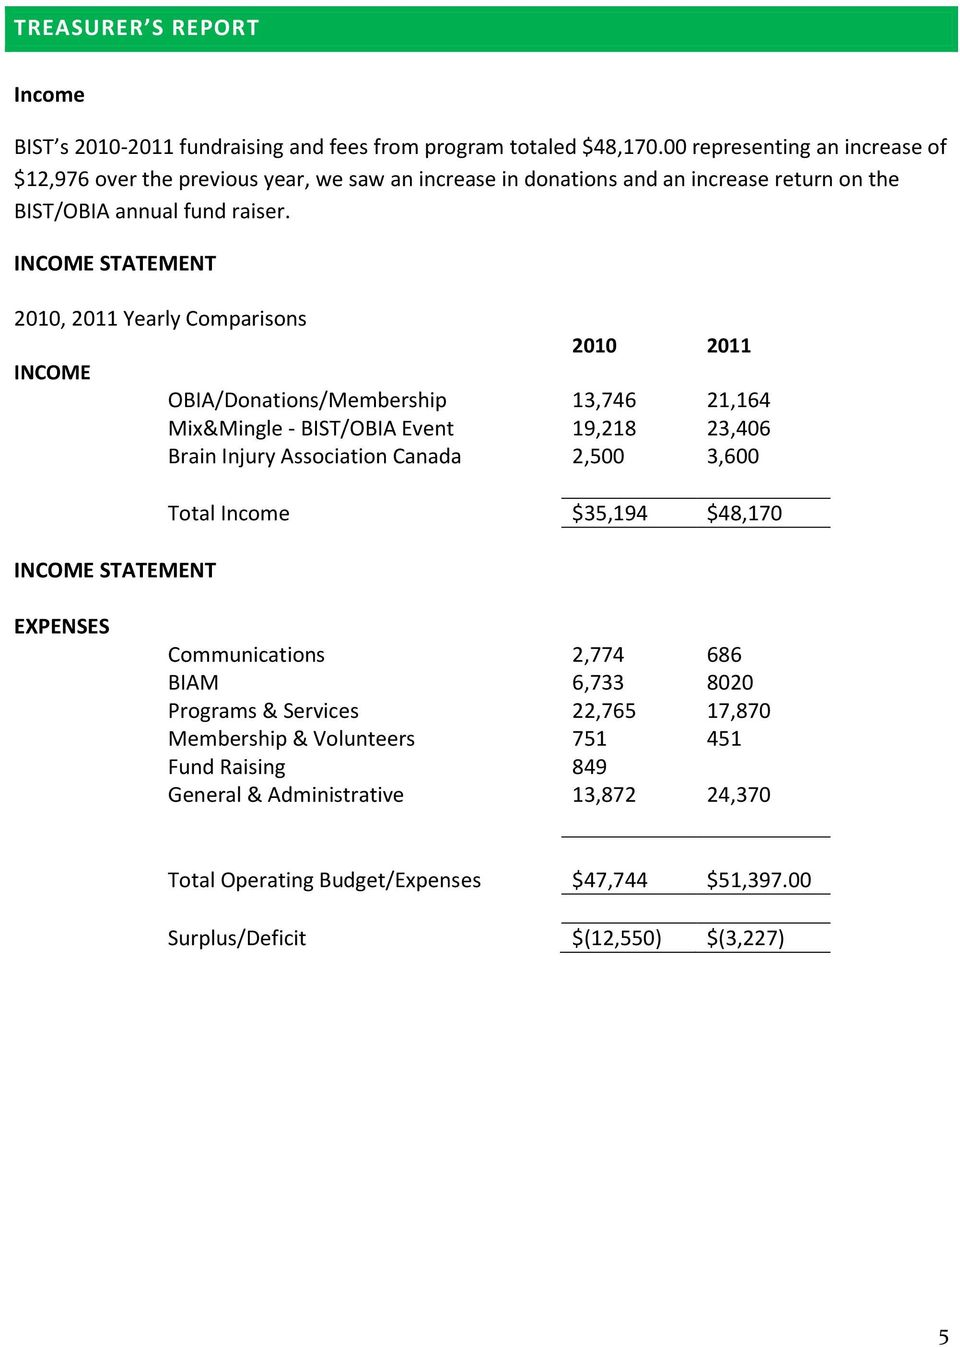 INCOME STATEMENT 2010, 2011 Yearly Comparisons INCOME INCOME STATEMENT 2010 2011 OBIA/Donations/Membership 13,746 21,164 Mix&Mingle - BIST/OBIA Event 19,218 23,406 Brain Injury